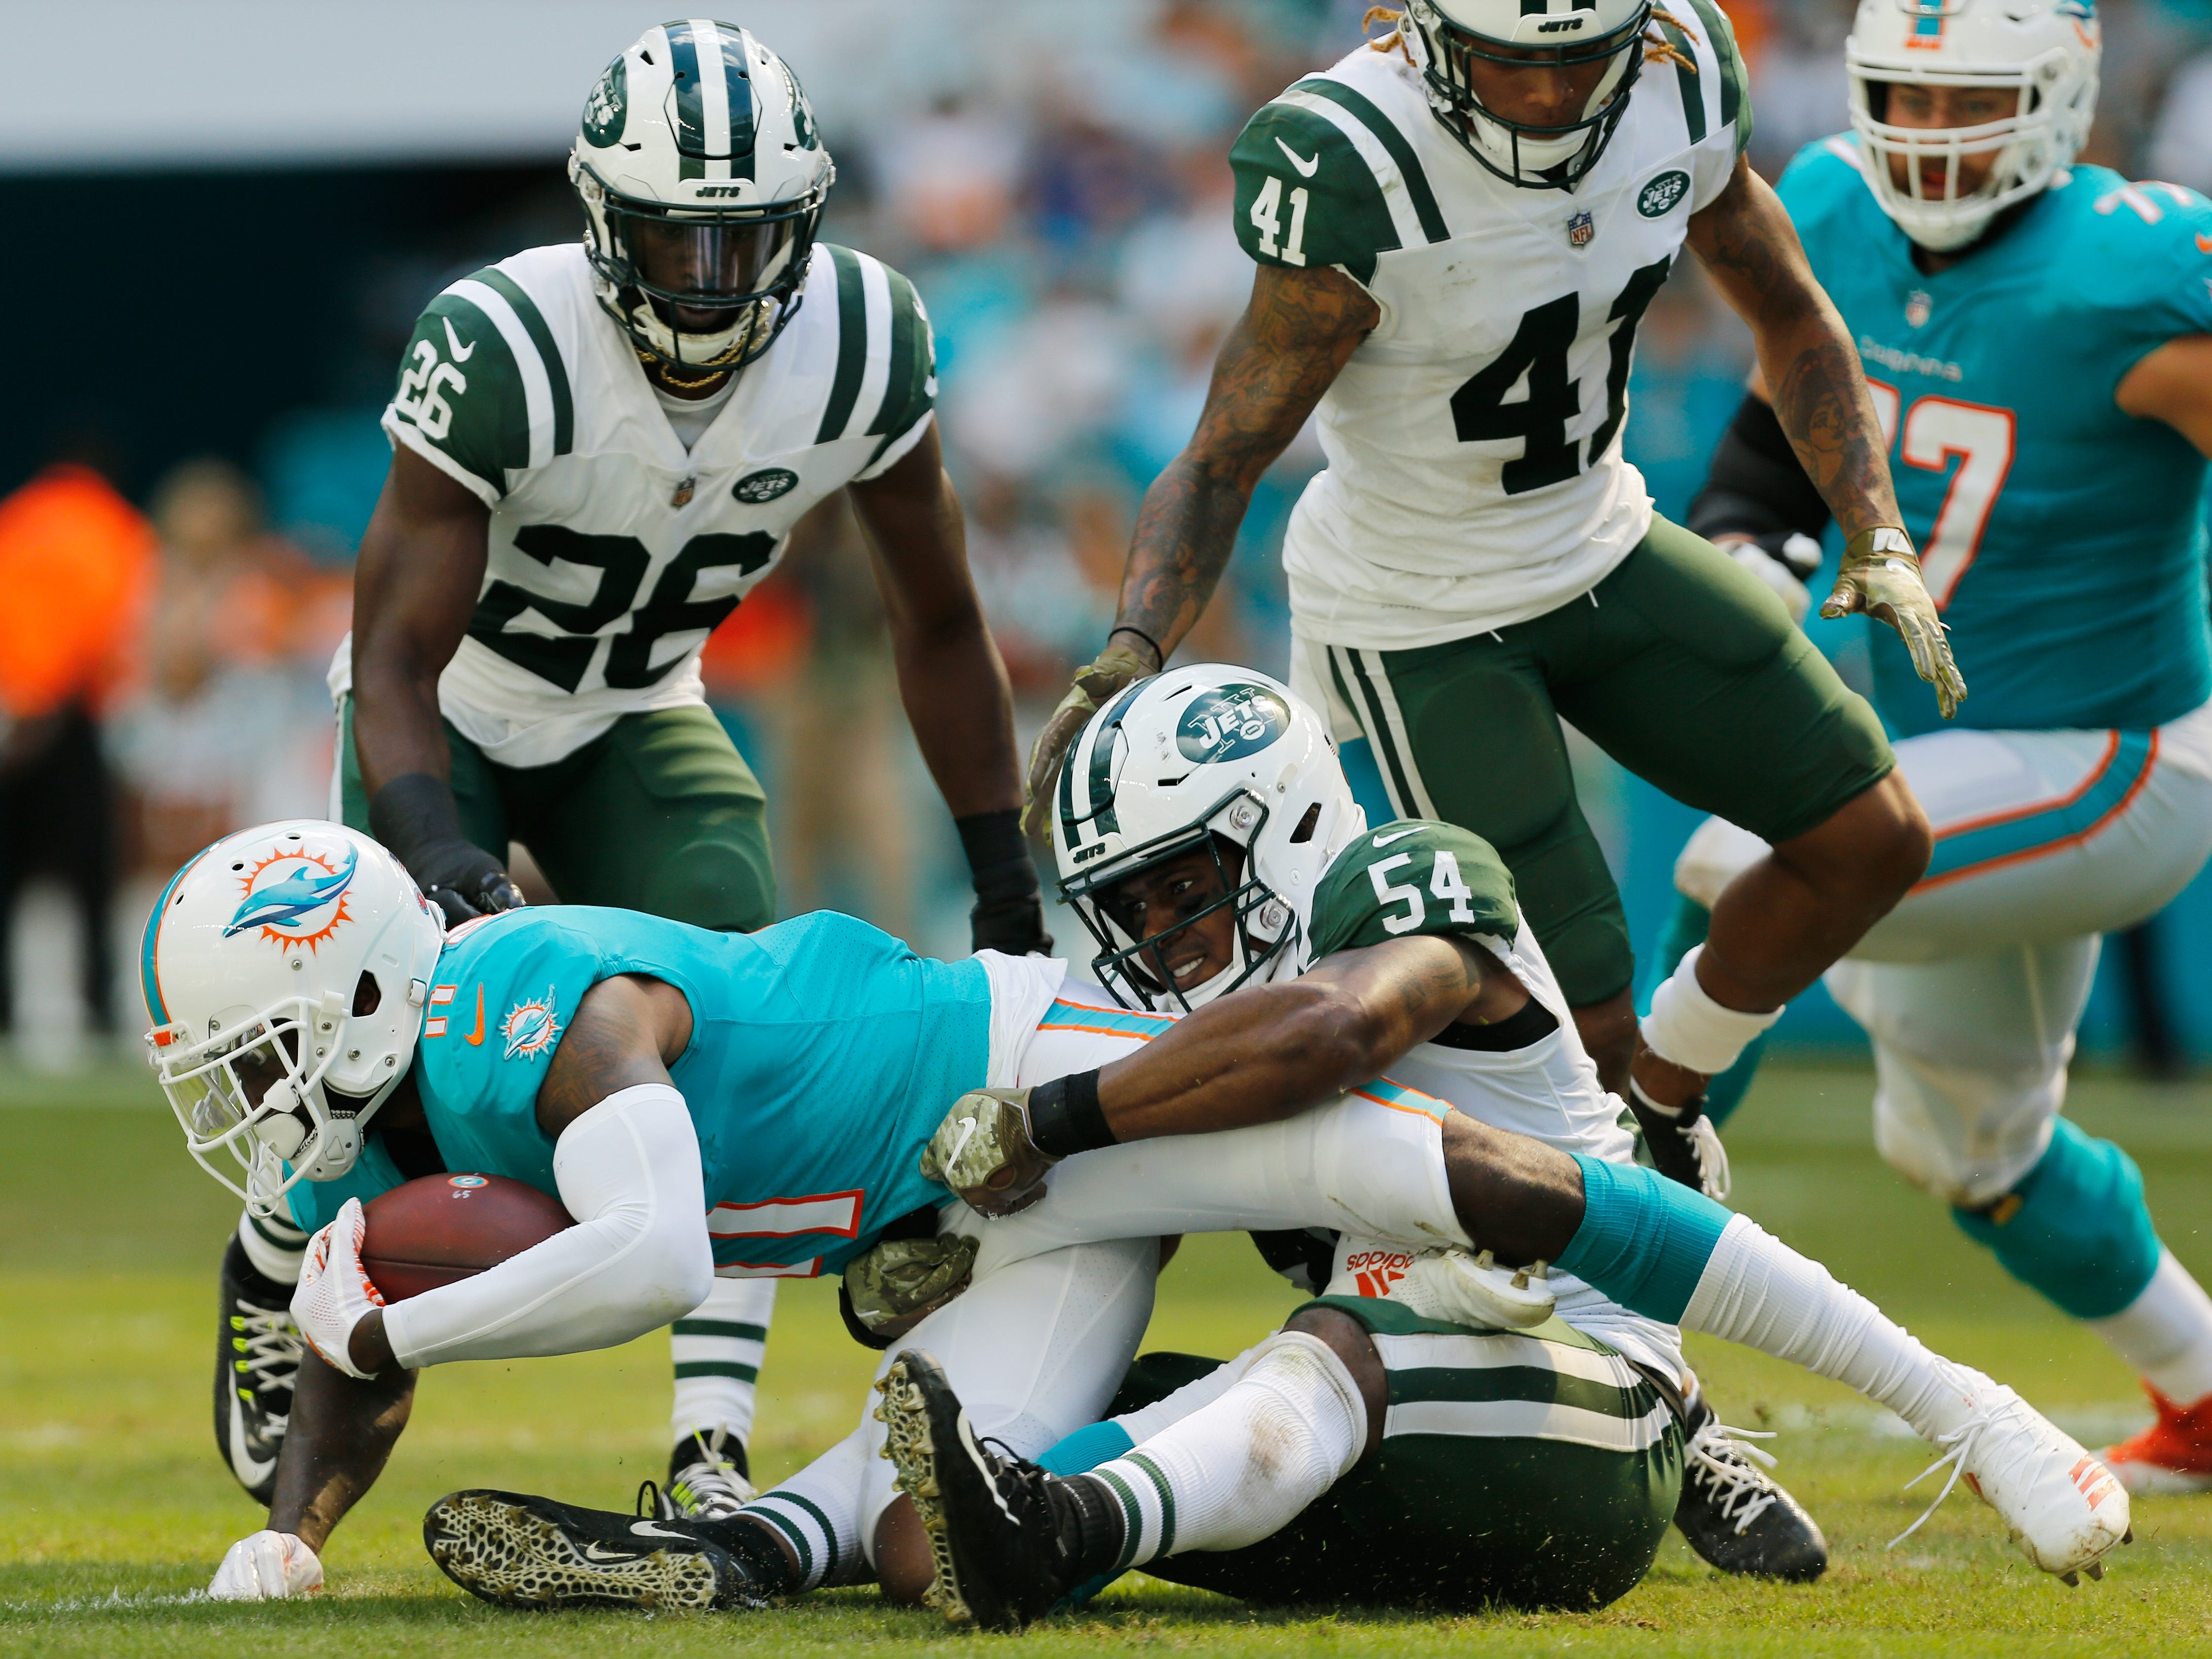 Avery Williamson (54) of the New York Jets tackles DeVante Parker (11) of the Miami Dolphins in the second quarter at Hard Rock Stadium.